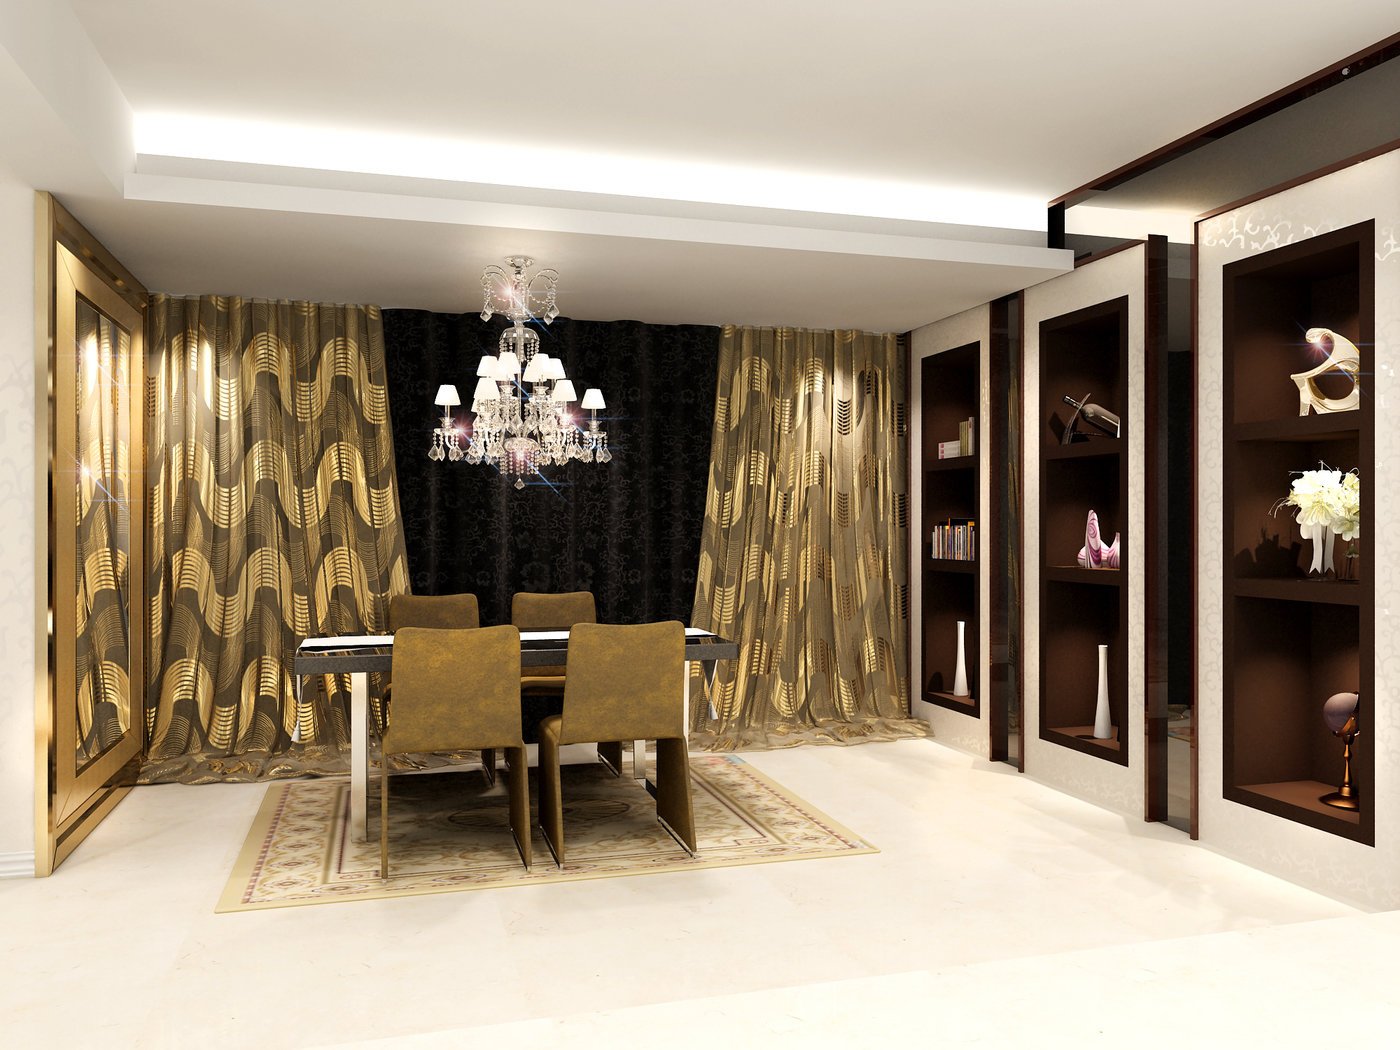 careers freelance original office designer of in stupendous interior toronto chic with size decorating stunning the restaurant pune full restaurants design jobs awesome